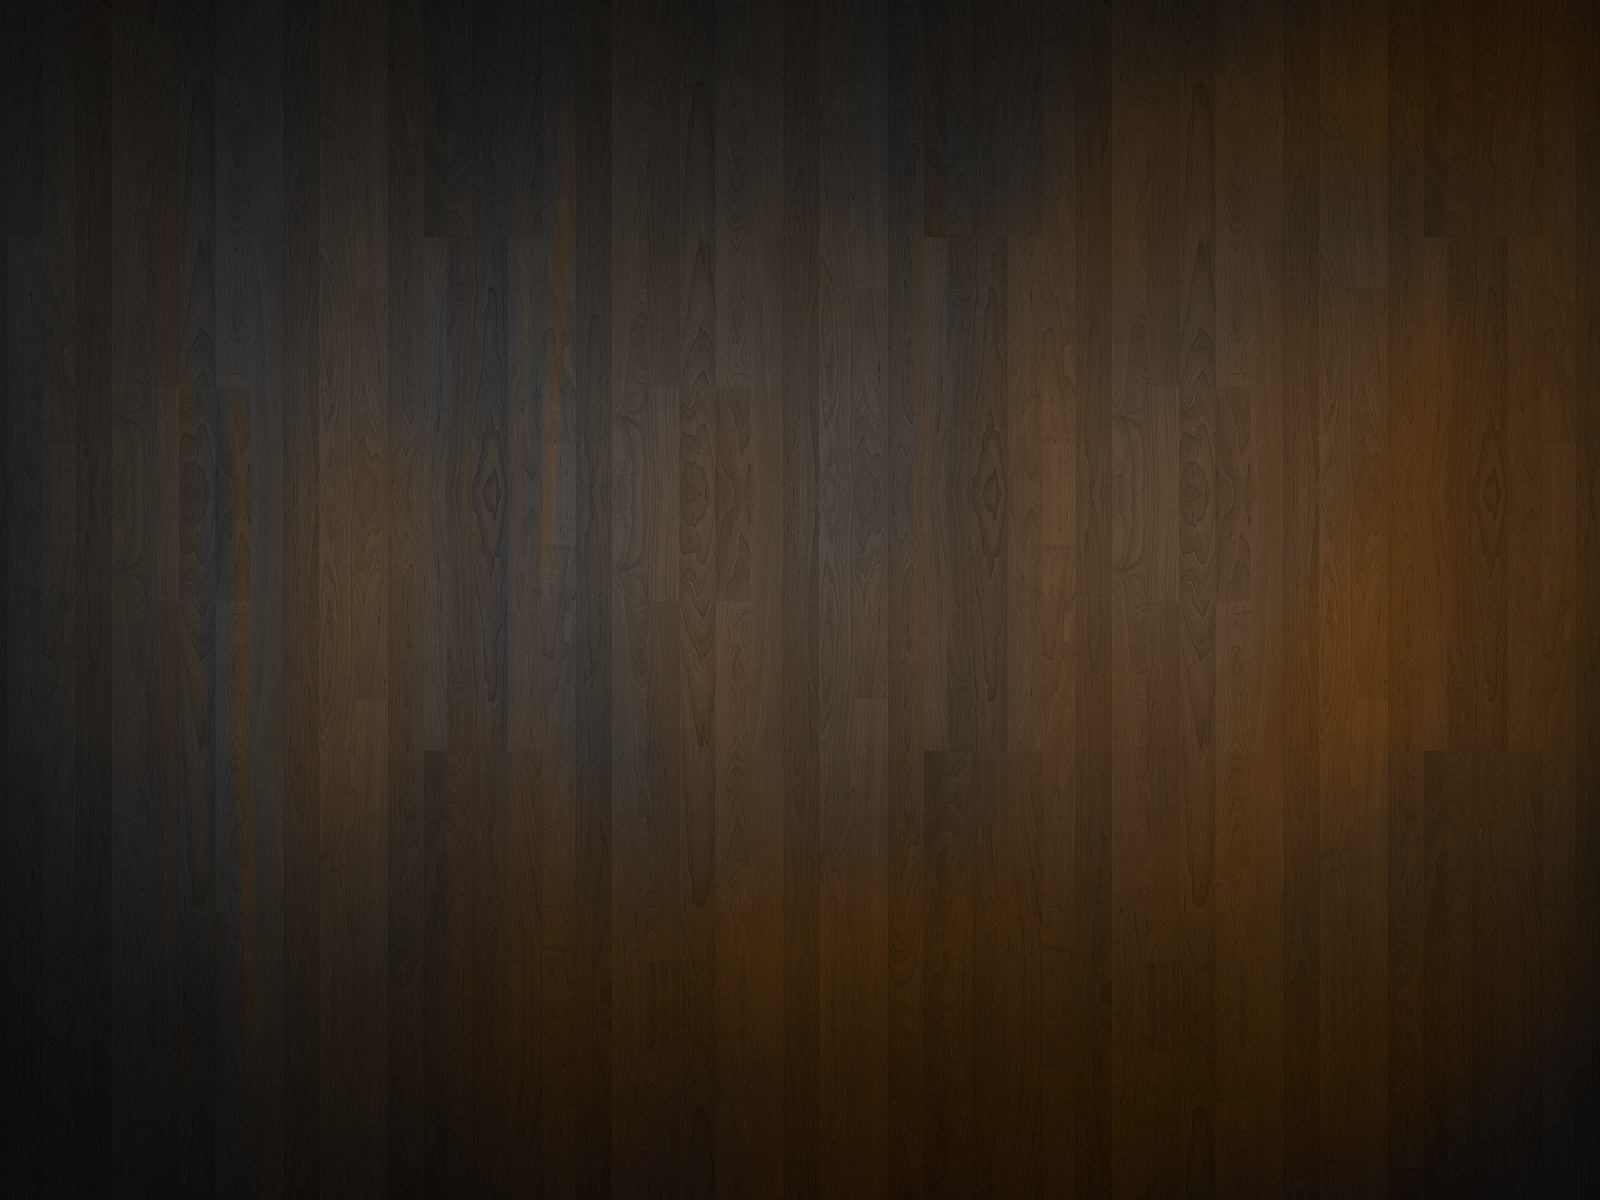 Wooden Pattern Texture Android Wallpapers Hd E Learning 1600x1200